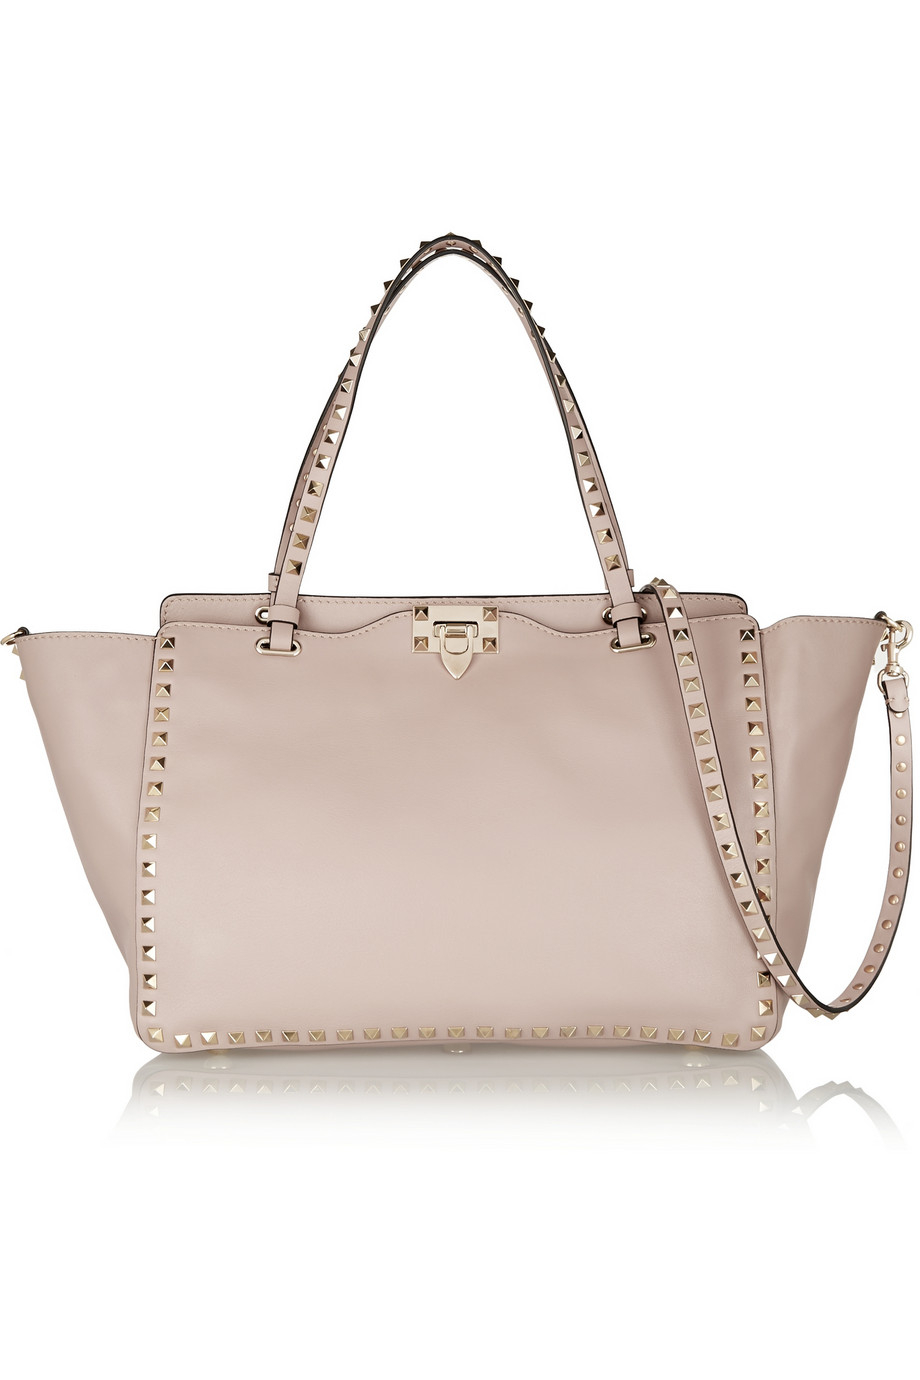 valentino the rockstud medium leather trapeze bag in pink